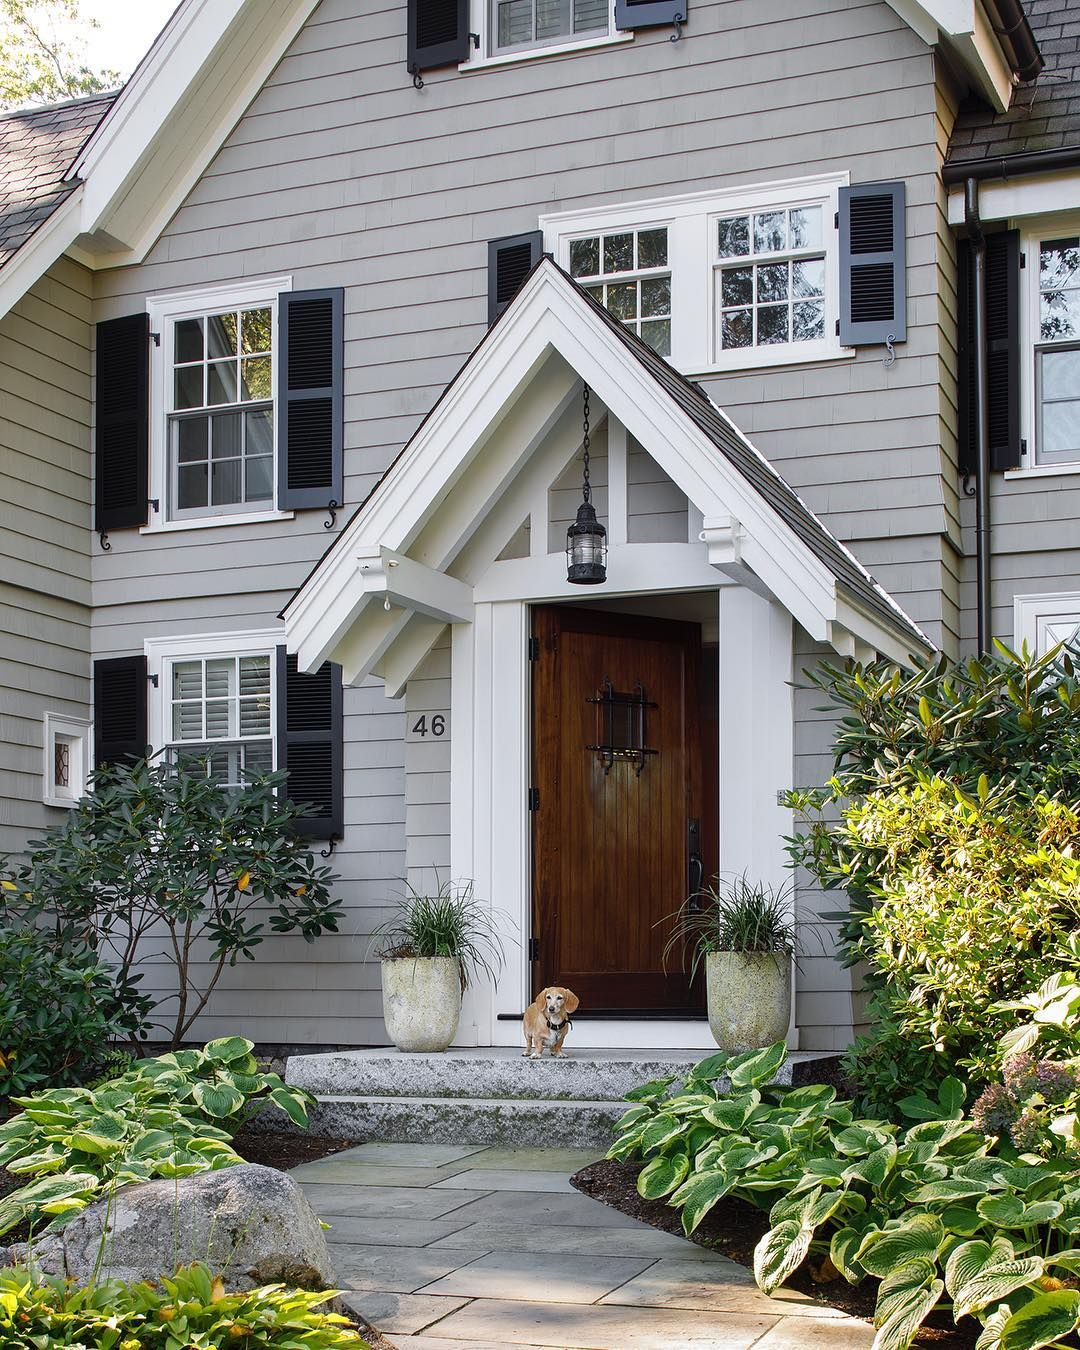 Makeover Mon New Painted Red Cedar Shingle Siding Wood Roof Historically Accurate Windows With Th Shingle House Exterior Shingle House Cedar Shingle Siding